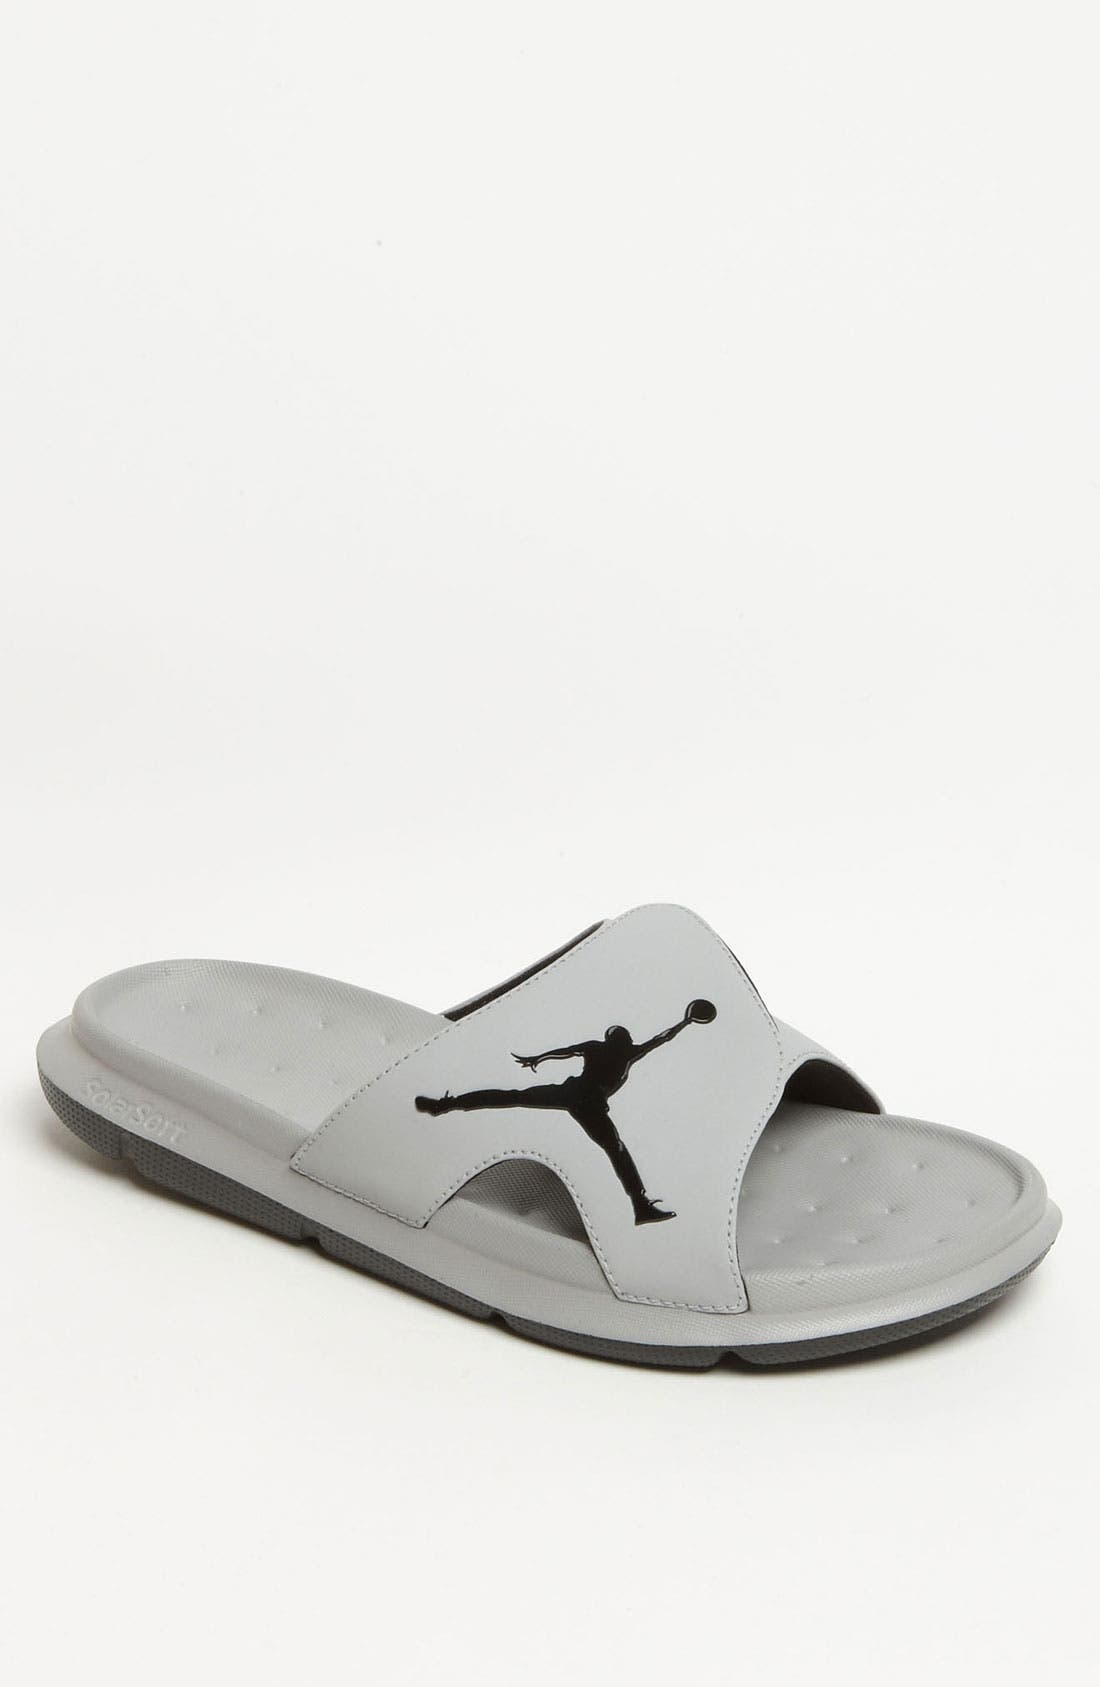 Alternate Image 1 Selected - Nike 'Jordan RCVR' Flip Flop